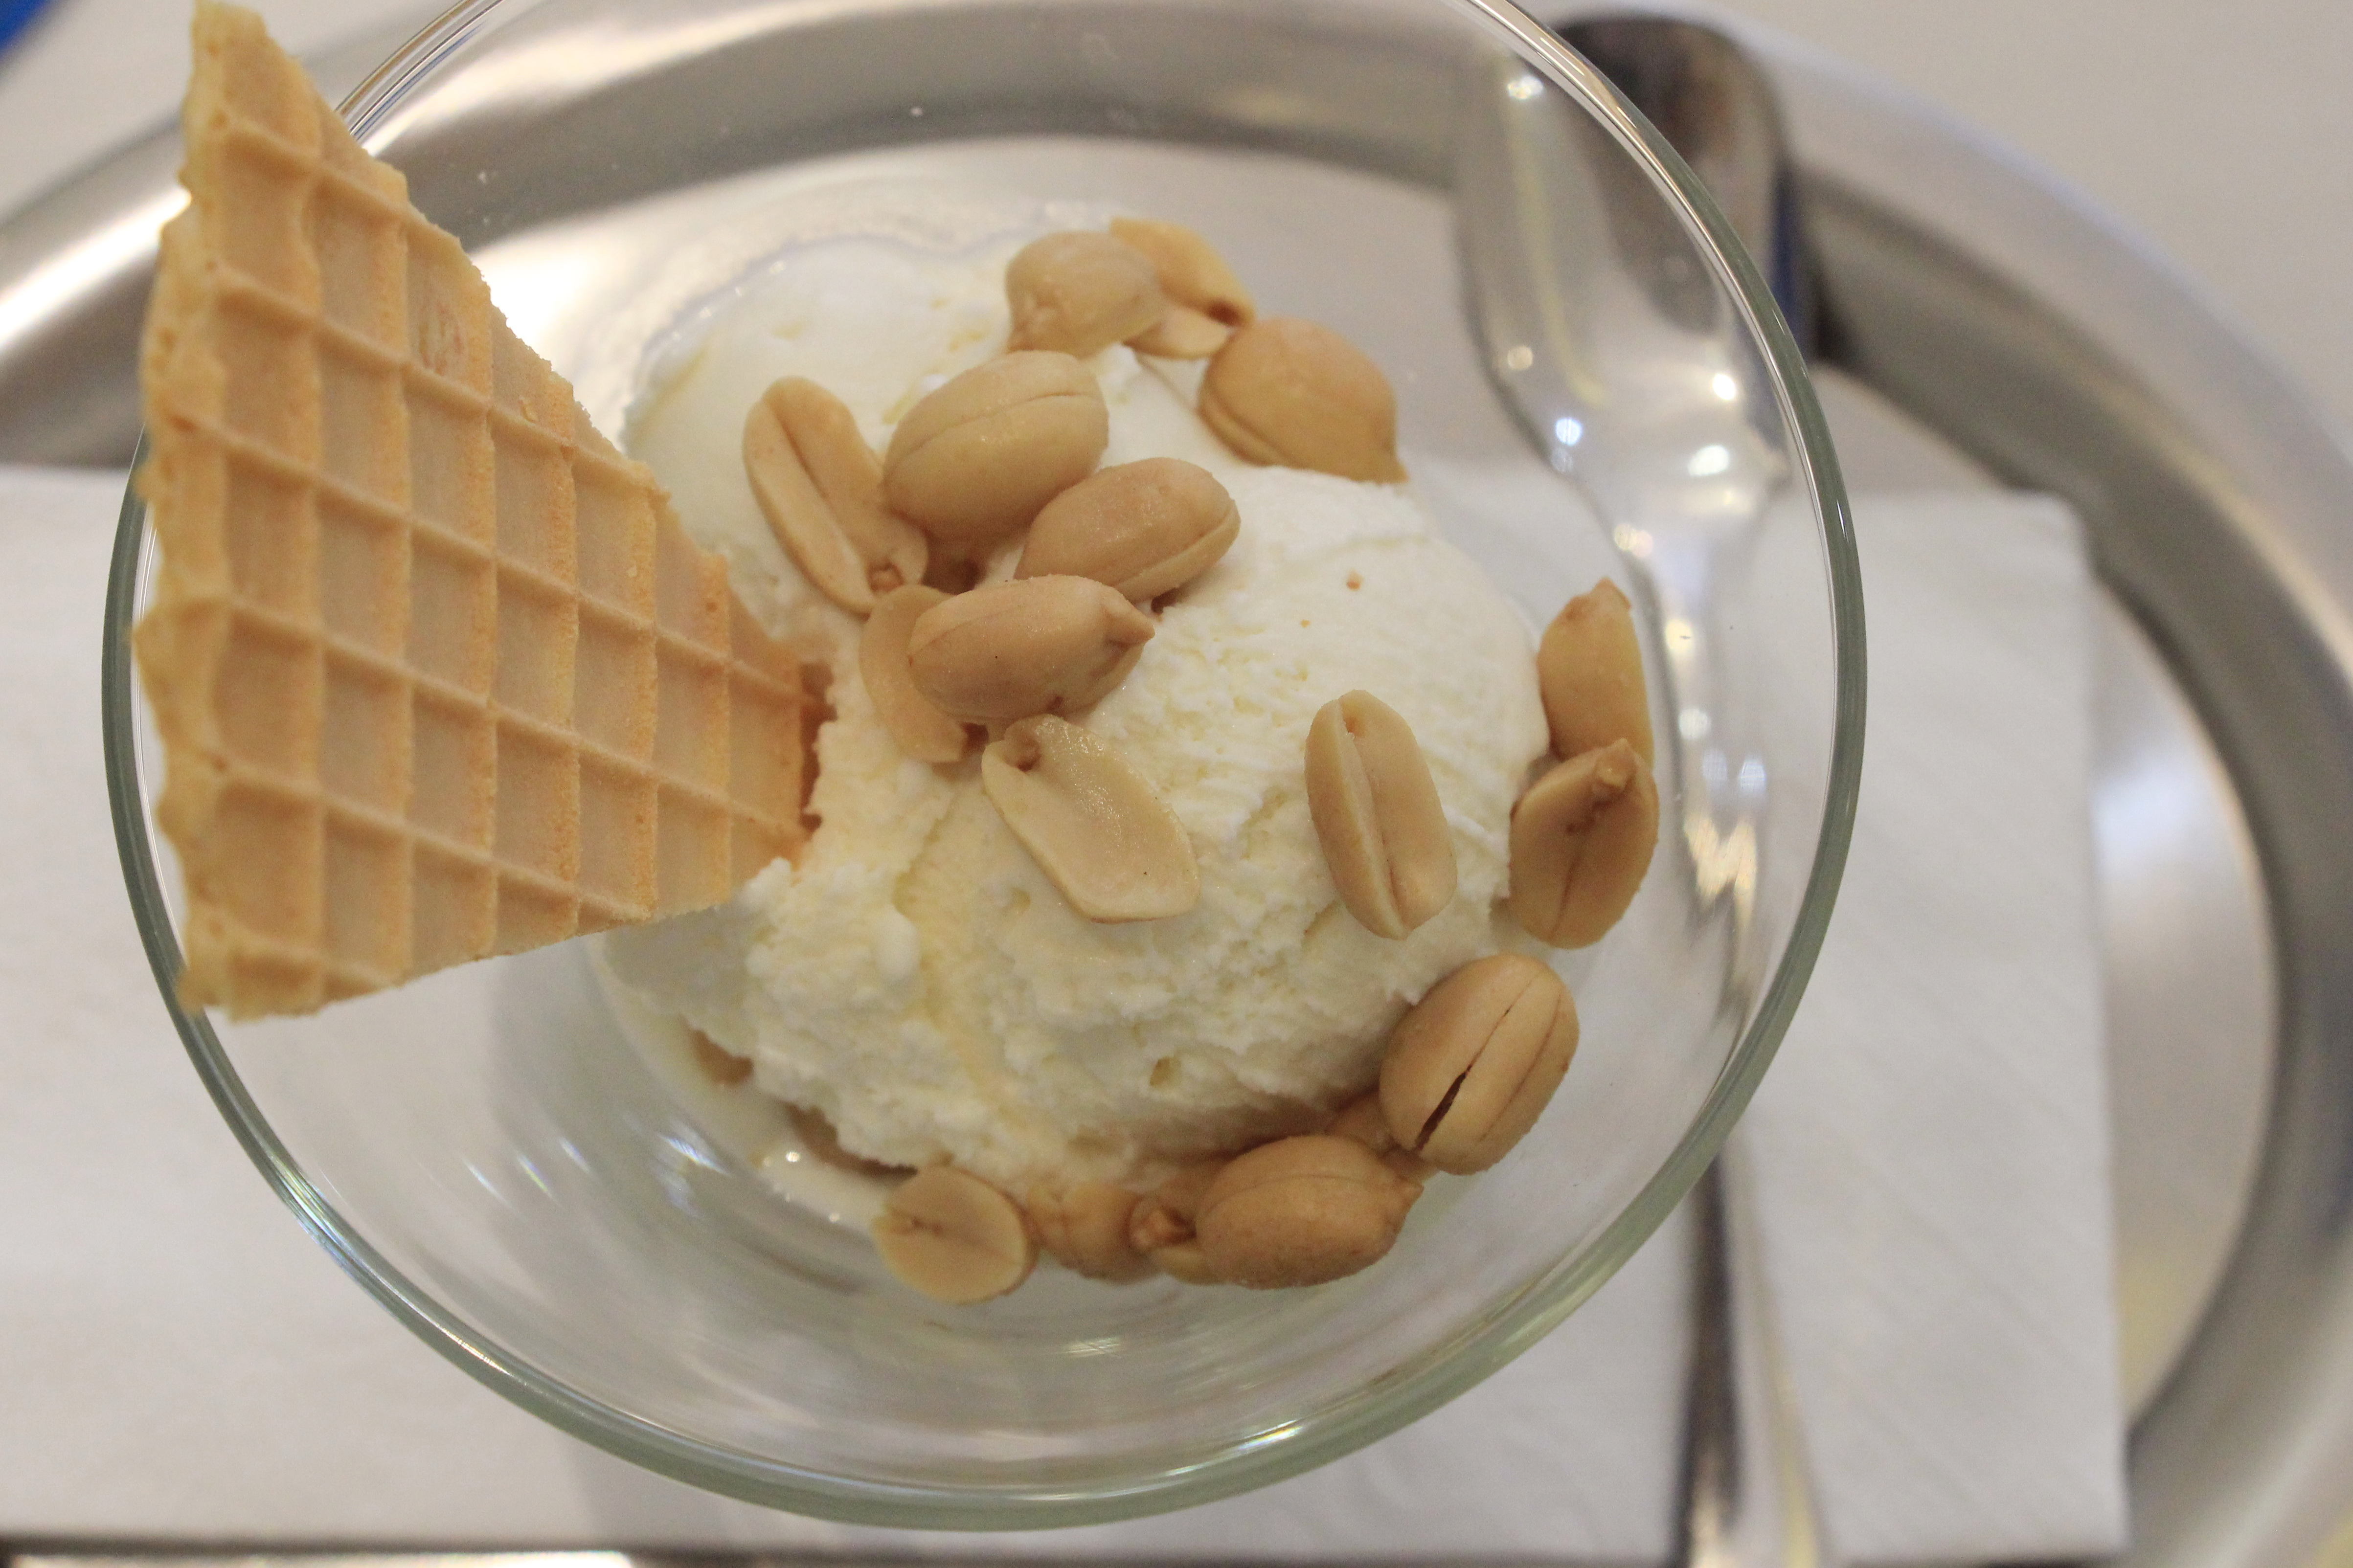 Fish sauce gelato is served with peanuts and a piece of waffle at Ralf's Arisan Gelato. Photo: Dong Nguyen/Tuoi Tre News